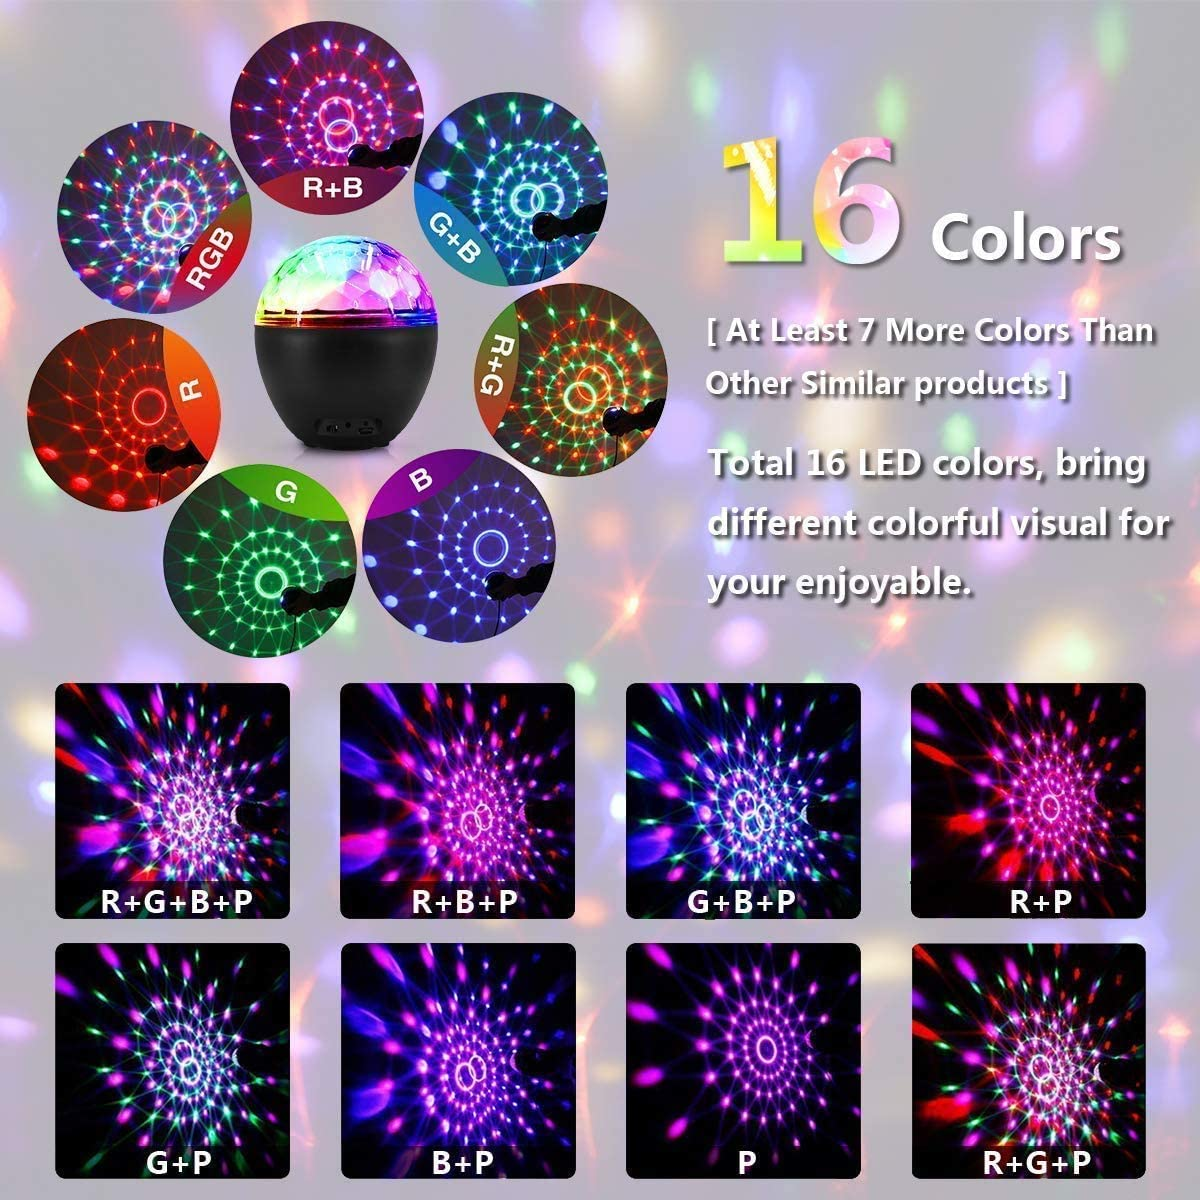 USB Rechargeable Powered with Remote Control Dj Lights Stage Light,for Kids Birthday Home Room Parties Wedding Show Club Pub 16 Color Party Lights Disco Ball